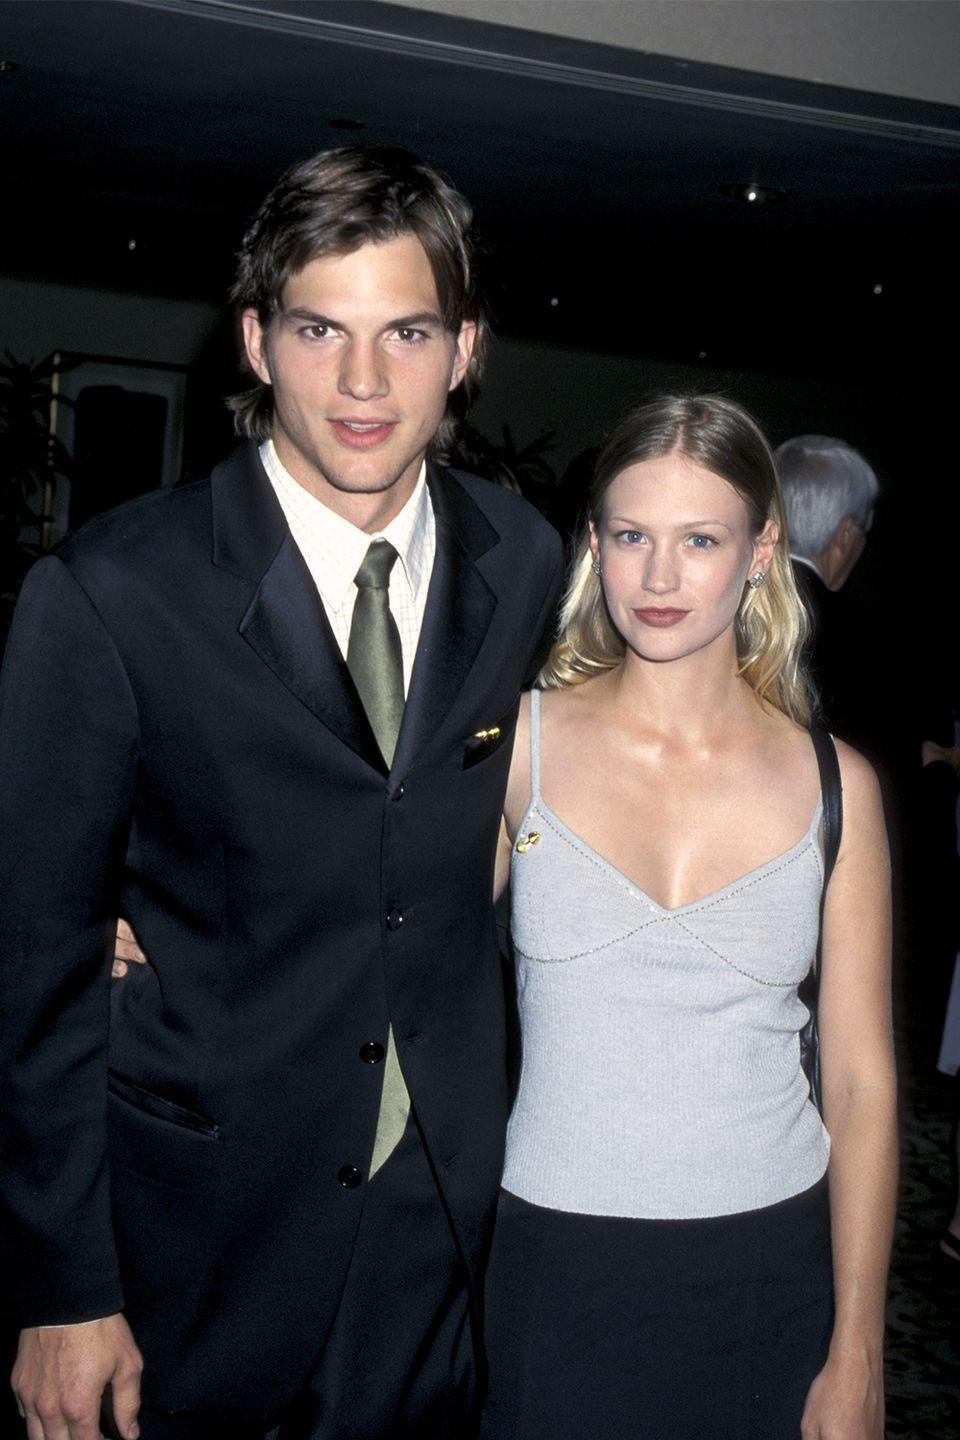 """<p>Back in 2009, the <em>Mad Men </em>actress revealed in <a href=""""http://www.eonline.com/news/798880/january-jones-has-a-message-for-ex-boyfriend-ashton-kutcher"""" rel=""""nofollow noopener"""" target=""""_blank"""" data-ylk=""""slk:an interview with GQ"""" class=""""link rapid-noclick-resp"""">an interview with <em>GQ</em></a> that her first boyfriend was Ashton Kutcher. However, the relationship didn't work out because he couldn't get behind Jones' career choice. </p><p>""""[He] was not supportive of my acting,"""" Jones told <em>GQ.</em> """"He was like, I don't think you're going to be good at this. So—fuck you! He only has nice things to say now—if anything, I should thank him, because the minute you tell me I can't do something, that's when I'm most motivated.""""<br></p>"""